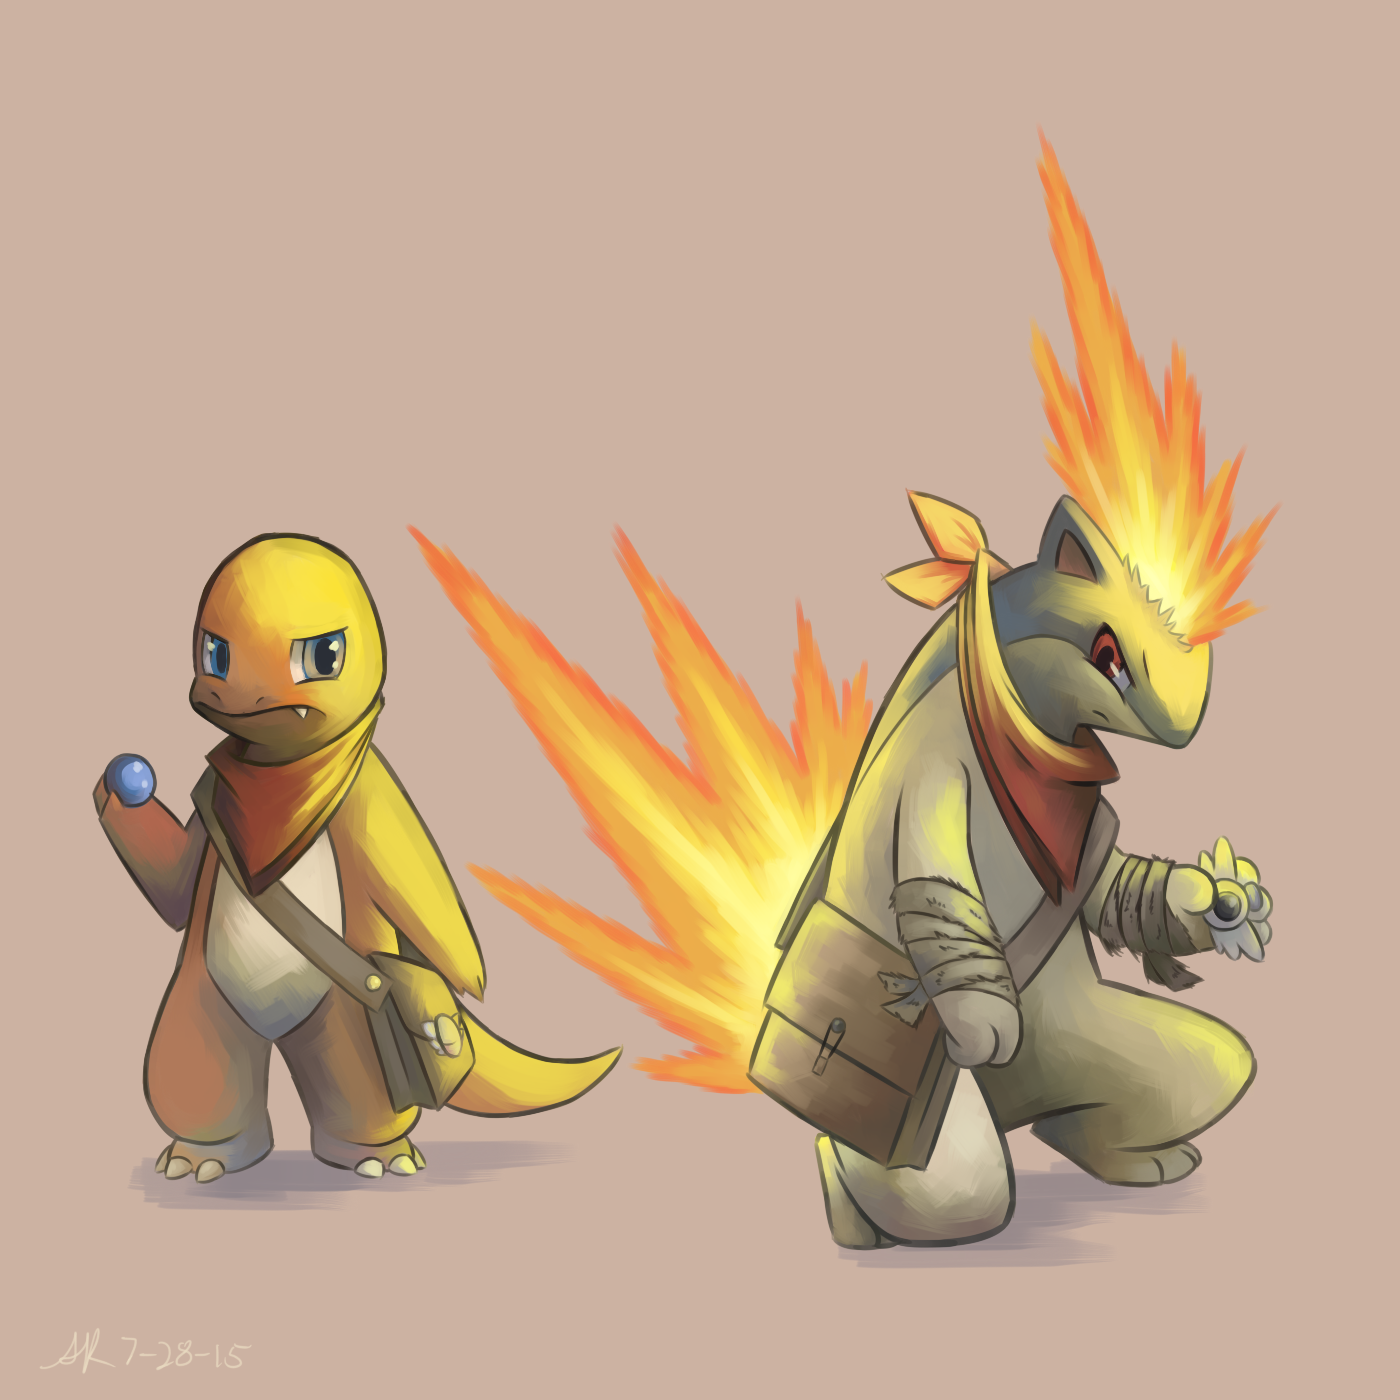 charmander and quilava by lilarrin on deviantart